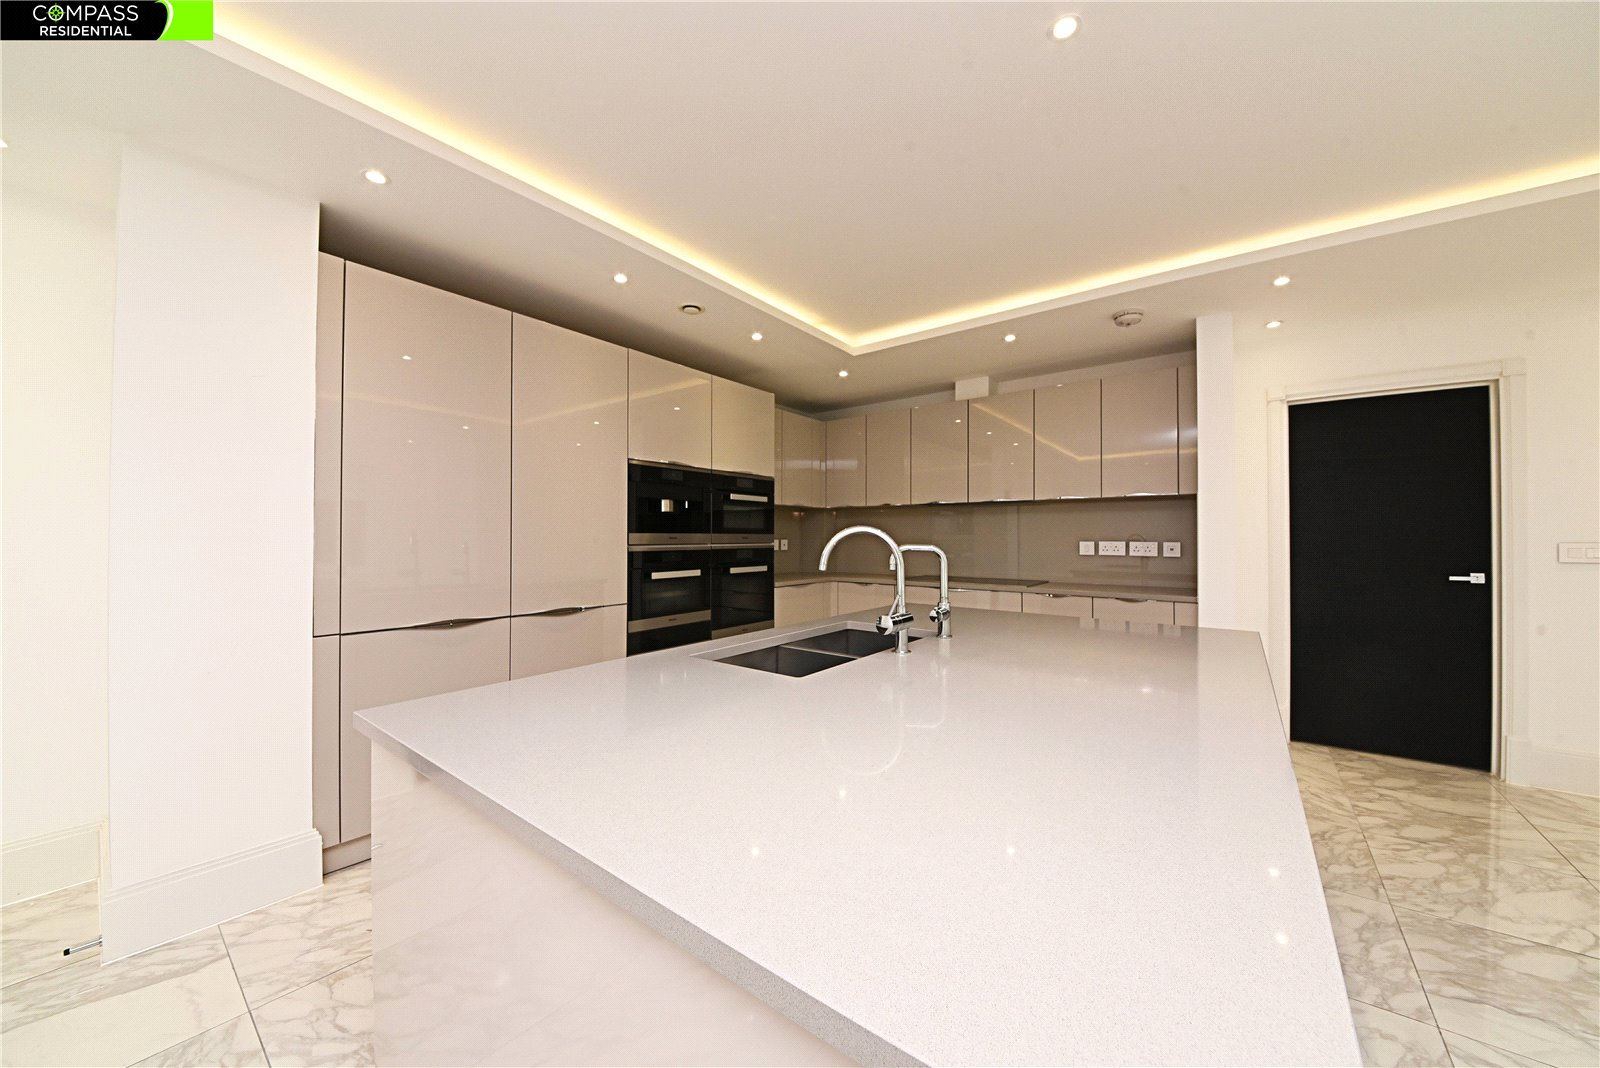 5 bed house to rent in Golders Green, NW11 7JH - Property Image 1